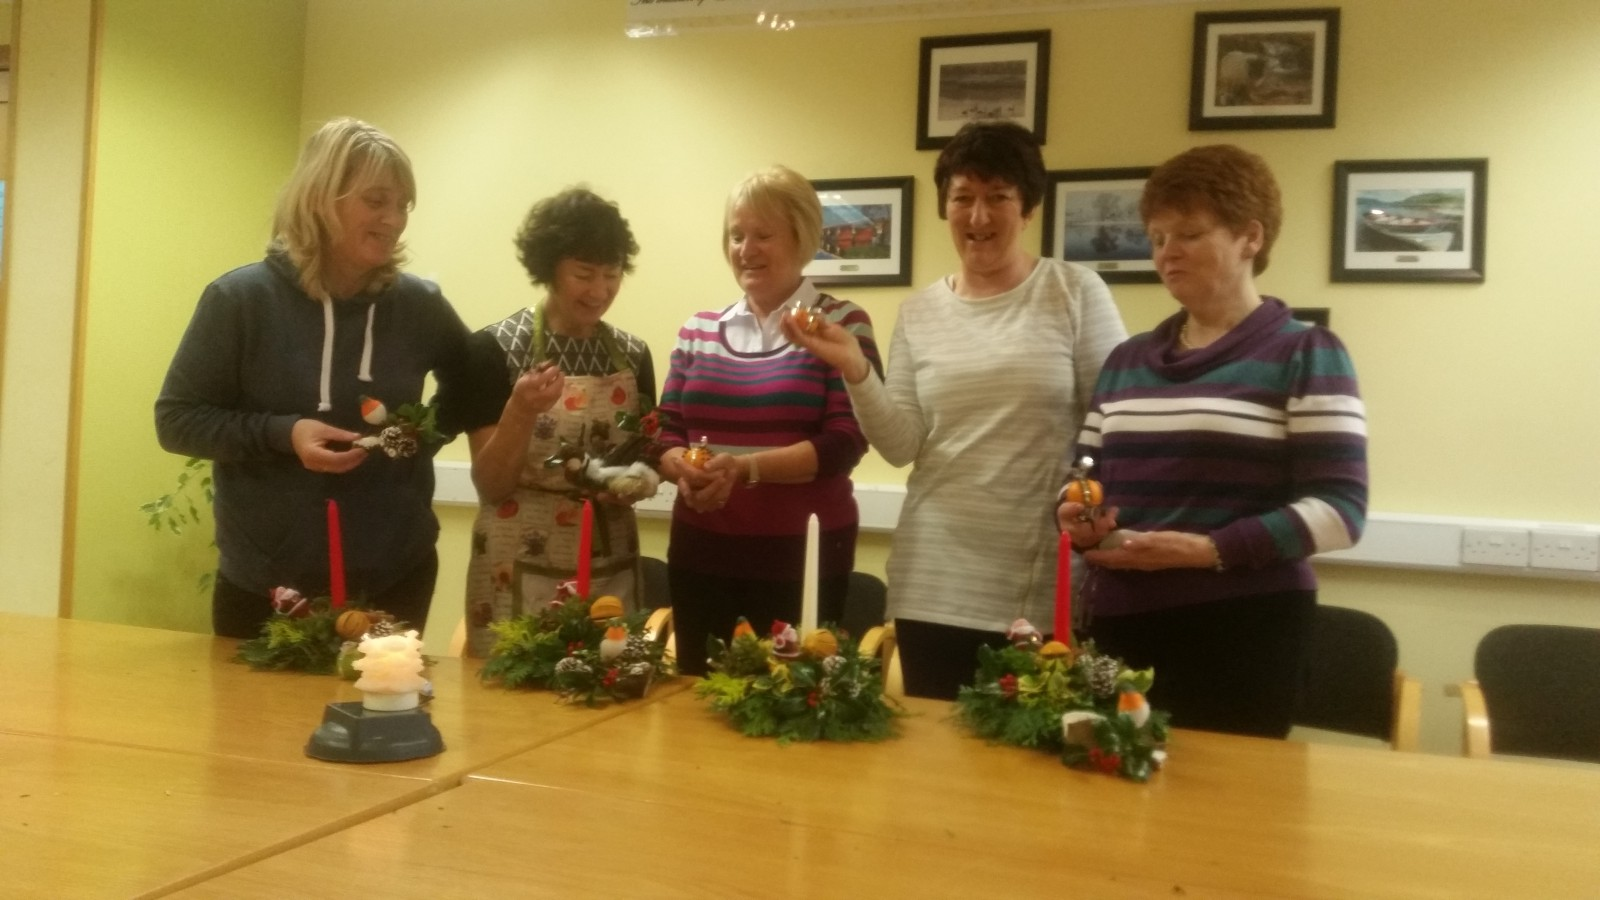 LAPWD Members enjoy Flower Arranging